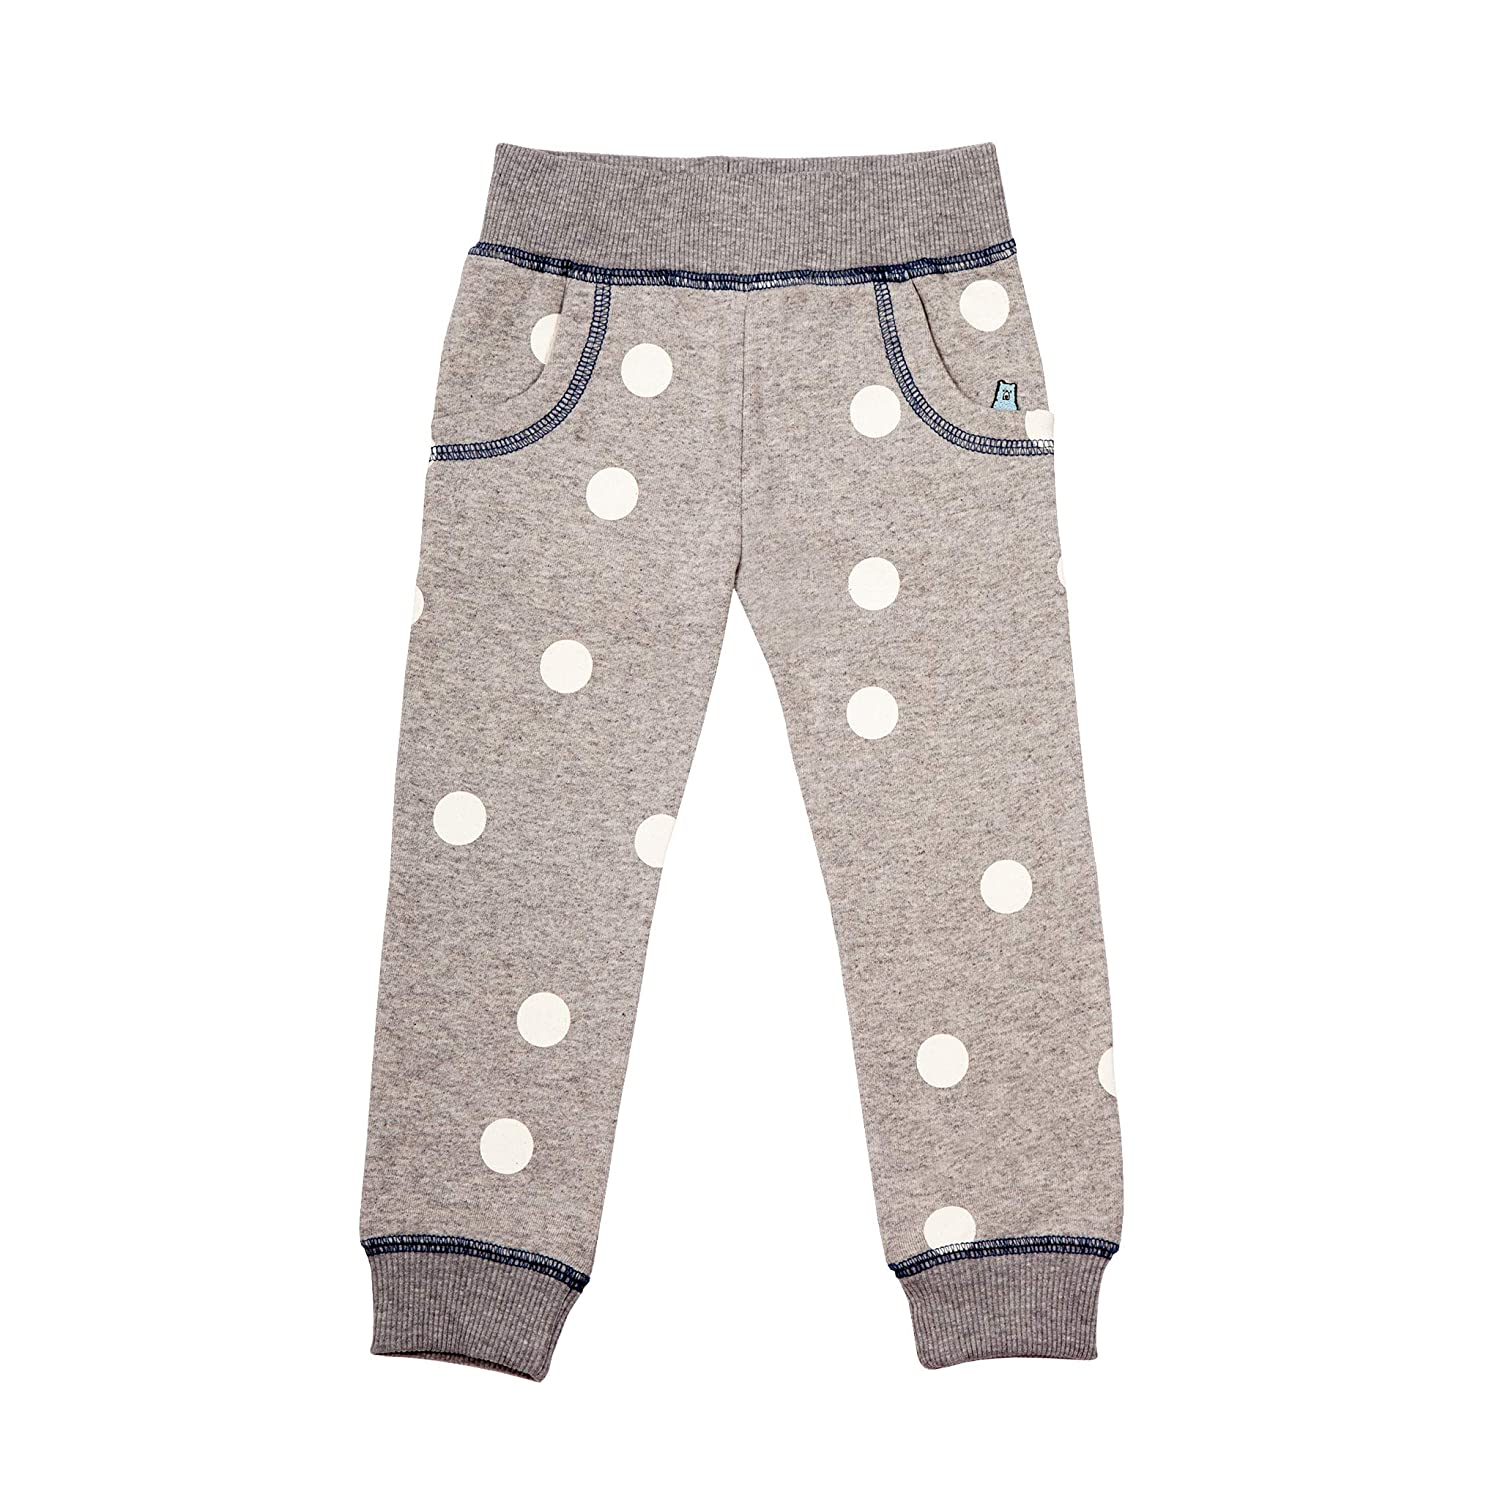 Where's that Bear? Moon Spot Jersey Joggers Grey Marl for Boys & Girls